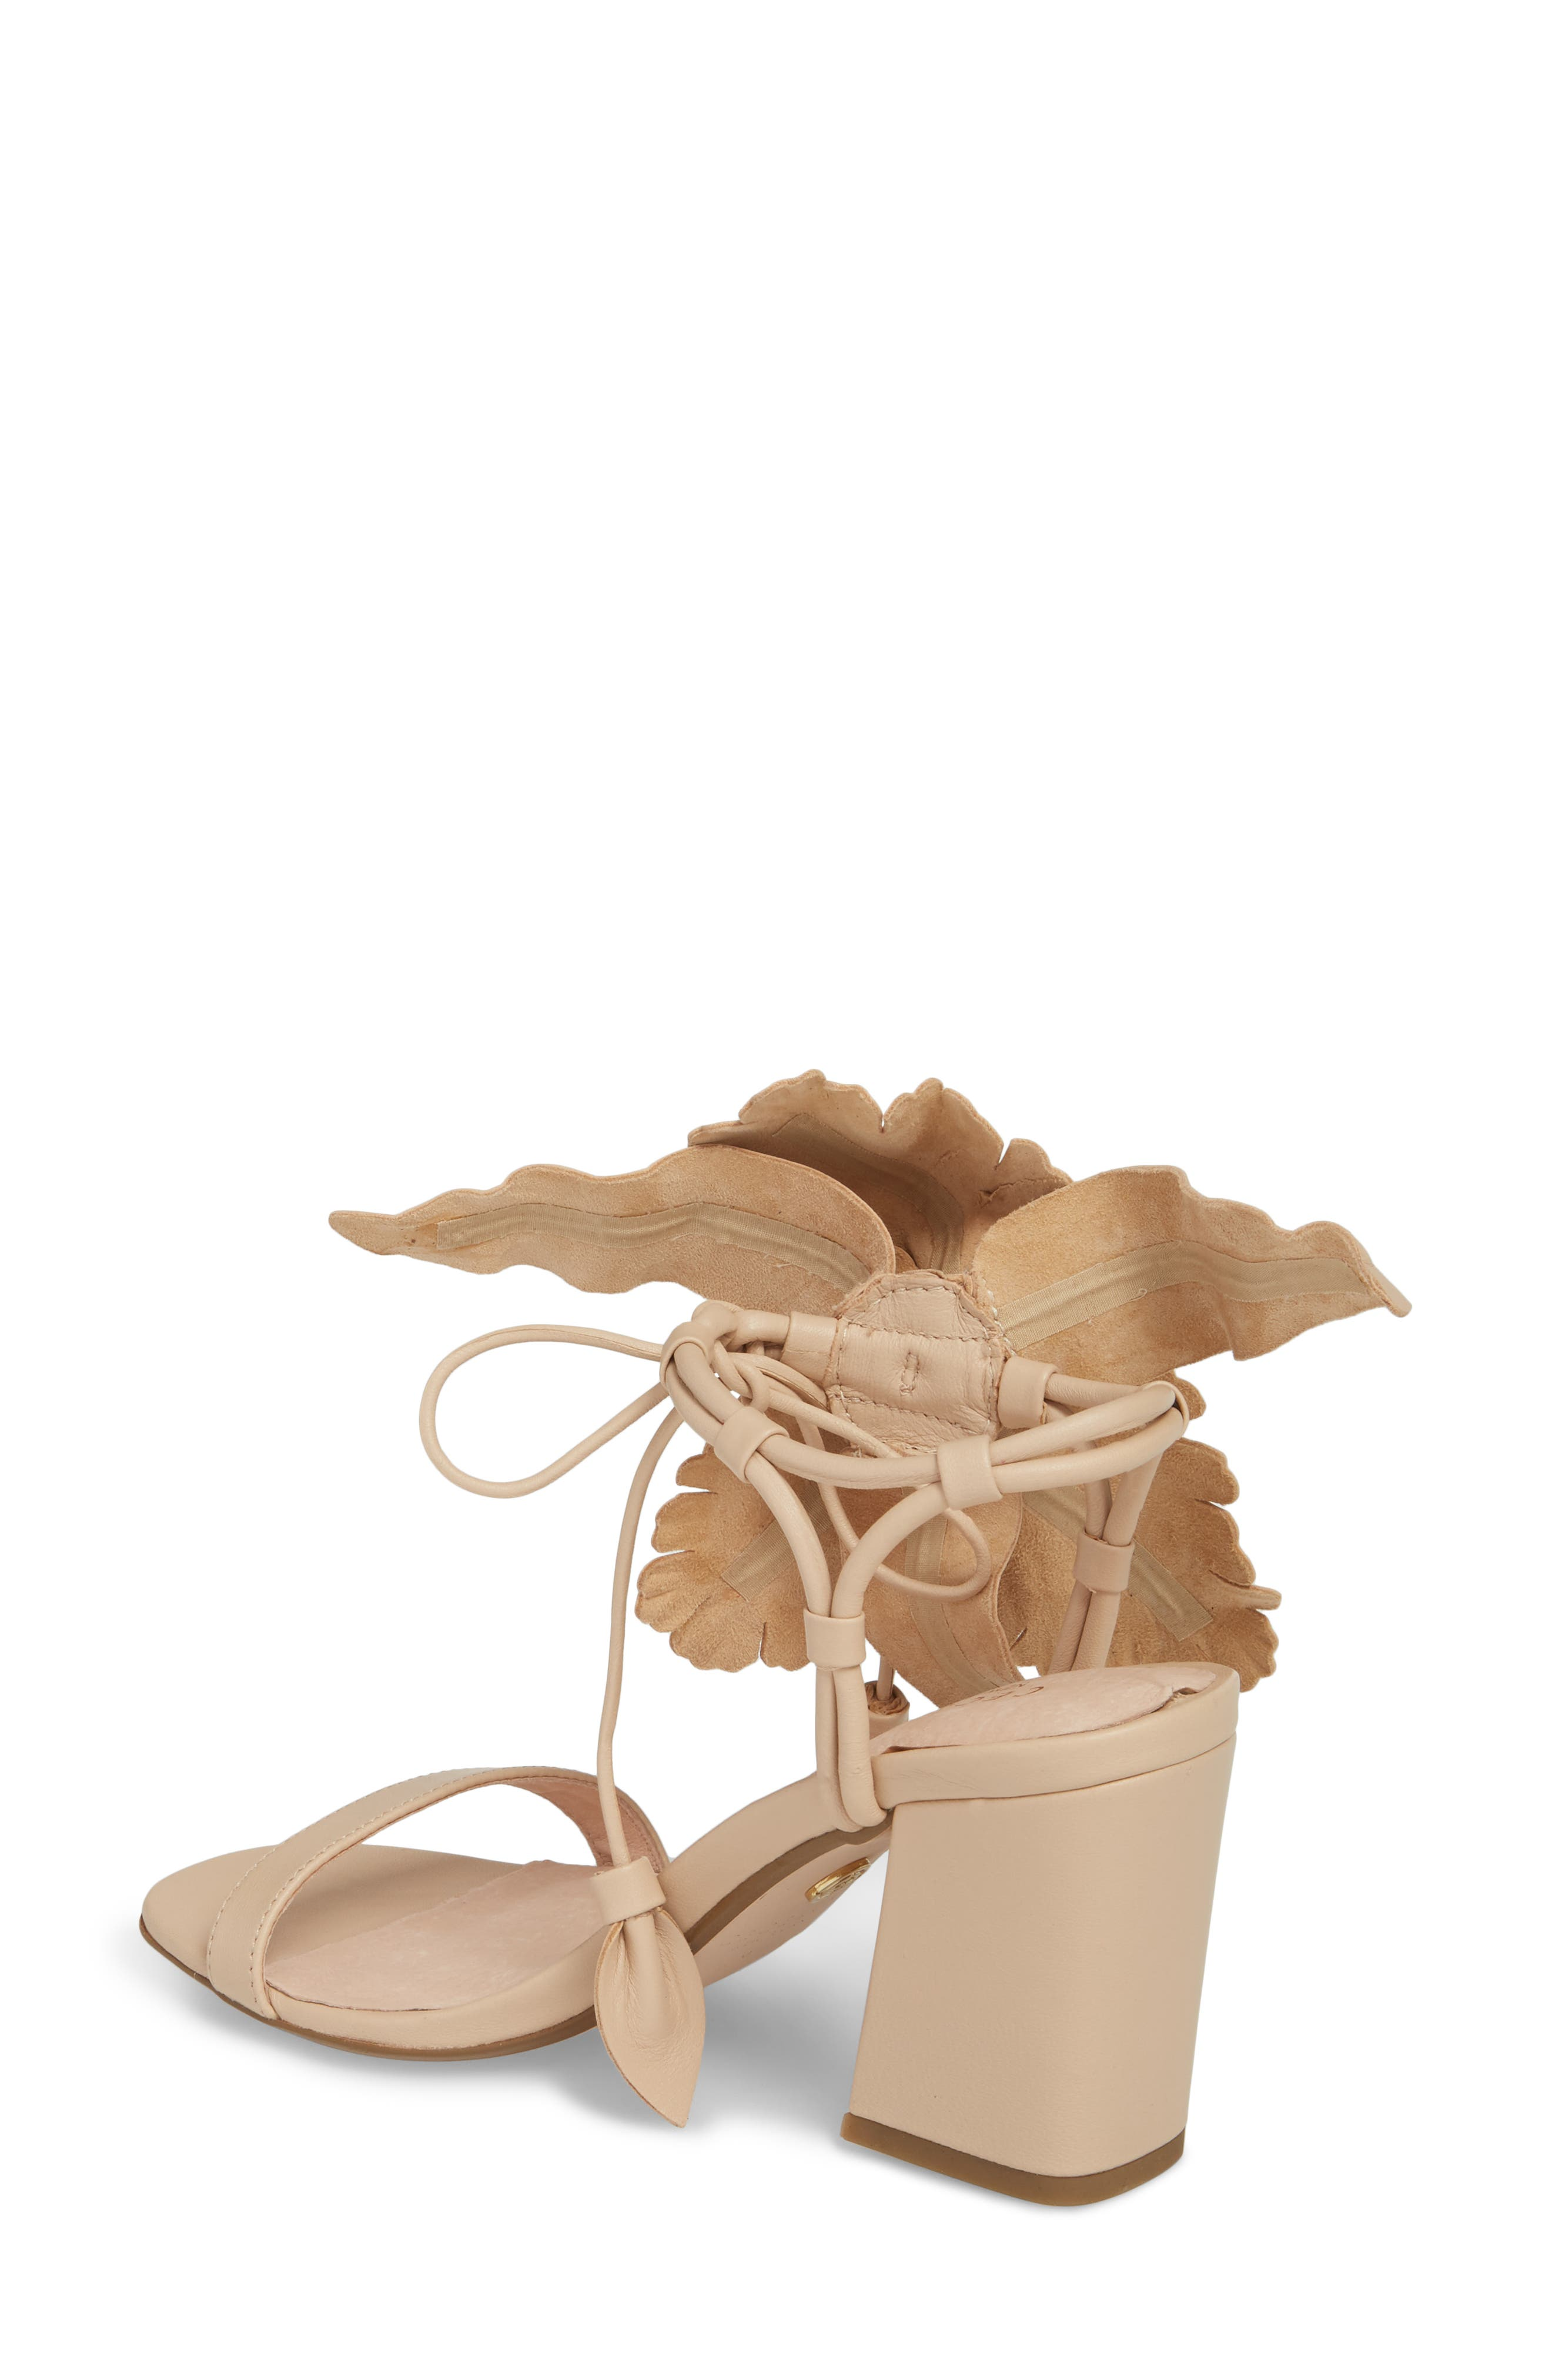 Hibiscus Sandal,                             Alternate thumbnail 2, color,                             Nude Leather